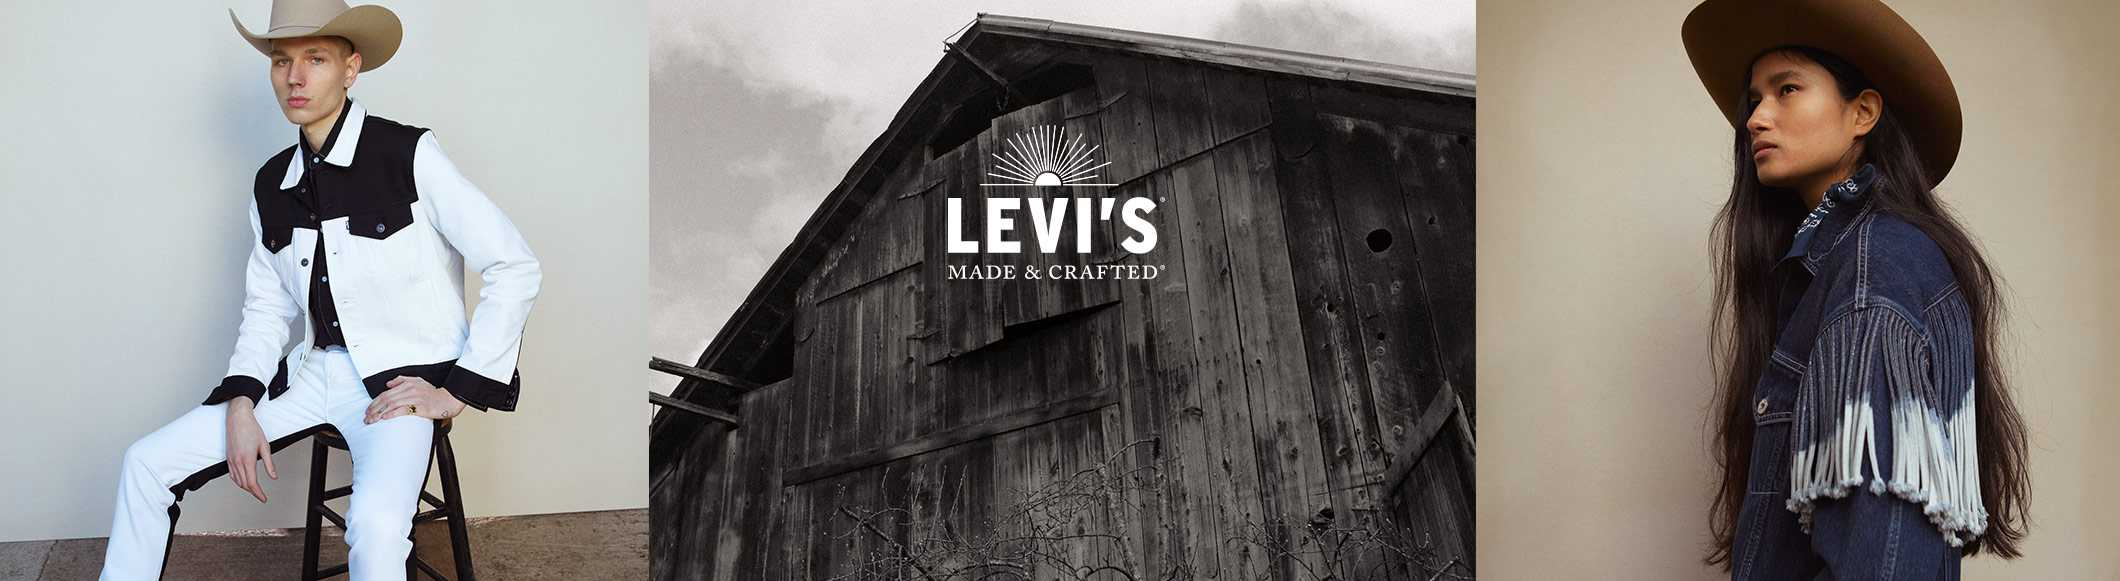 Artful construction by levis